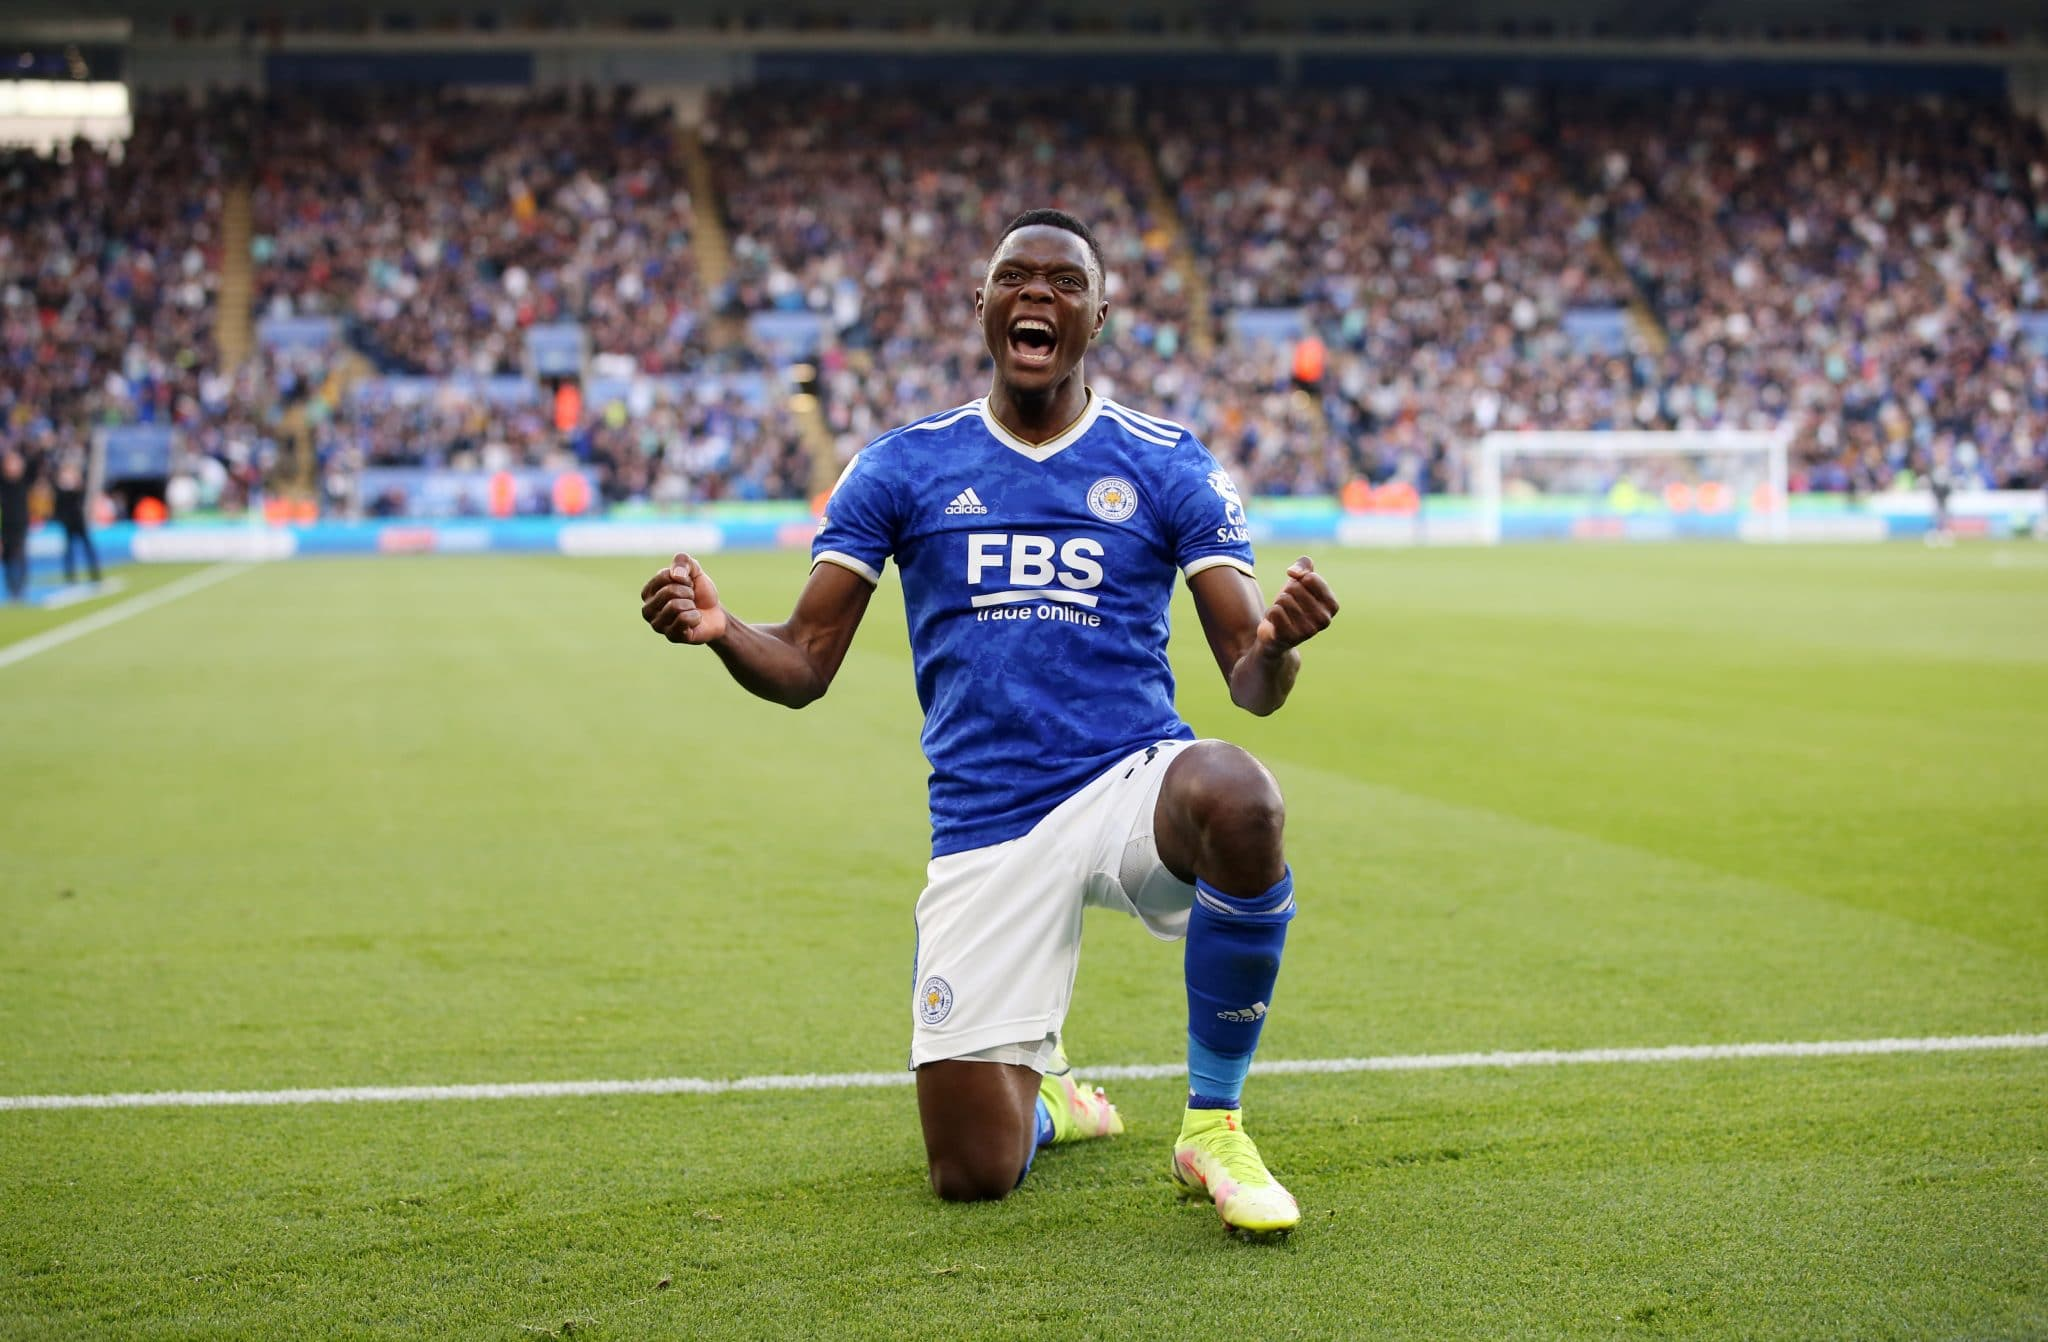 LEICESTER, ENGLAND - OCTOBER 16: Patson Daka of Leicester City celebrates after scoring to make it 4-2 during the Premier League match between Leicester City and Manchester United at King Power Stadium on October 16, 2021 in Leicester, England. (Photo by Plumb Images/Leicester City FC via Getty Images)